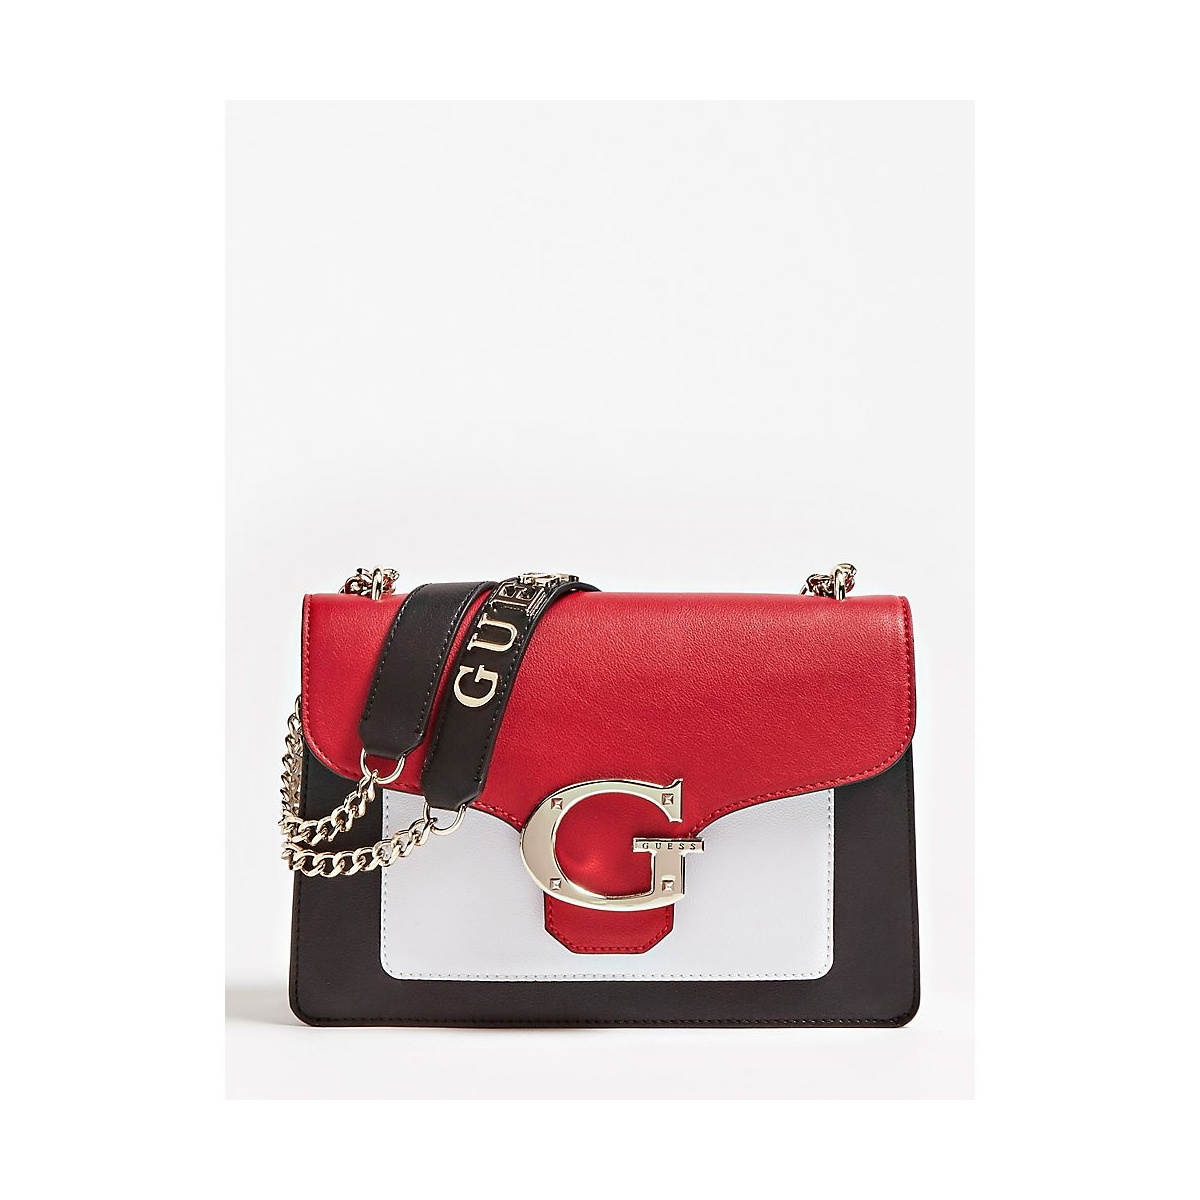 guess acheter un sac, GUESS Sandales Rouge Femme Chaussures